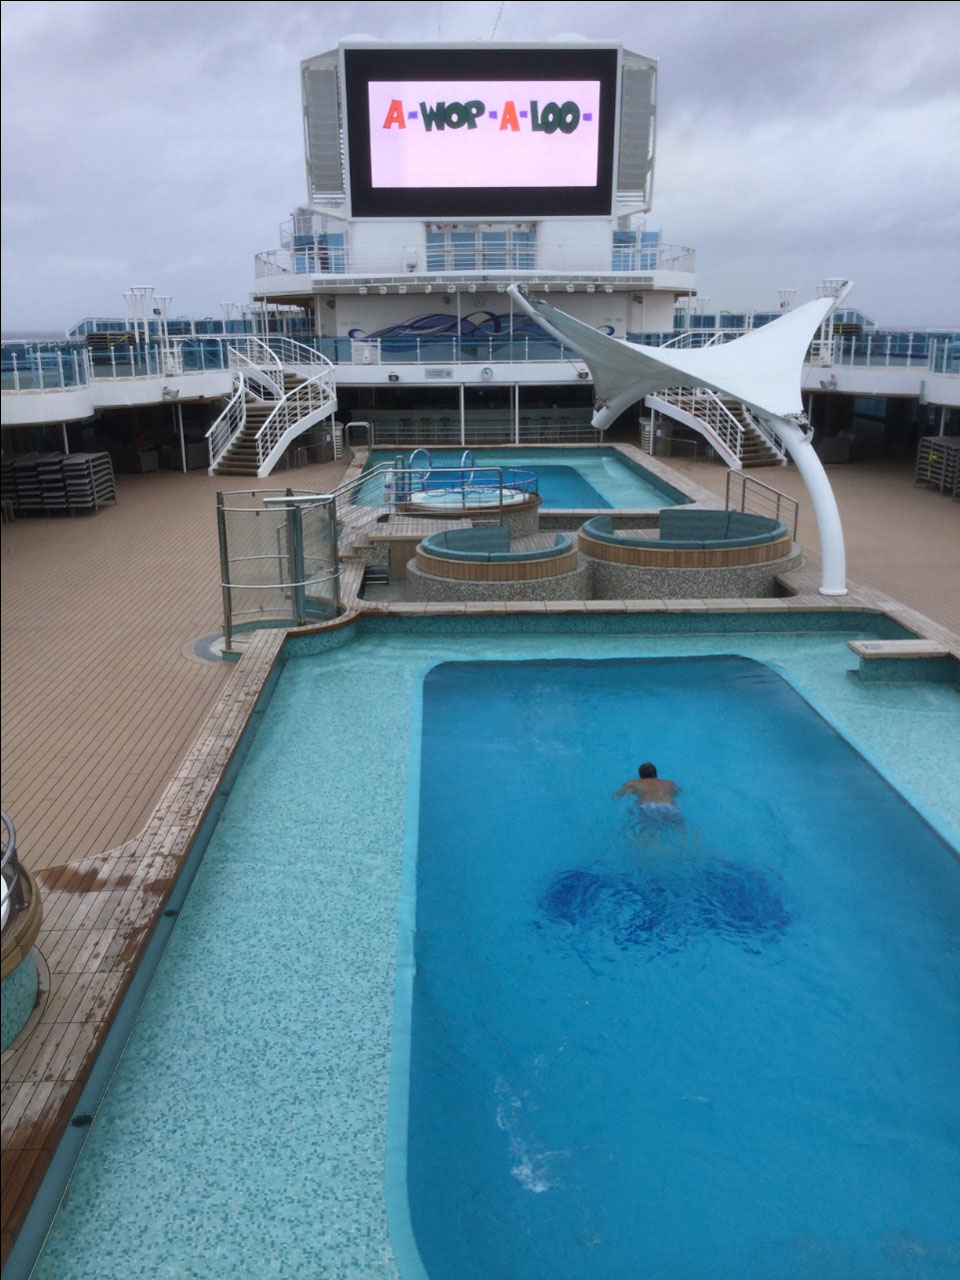 One brave swimmer, first of the cruise